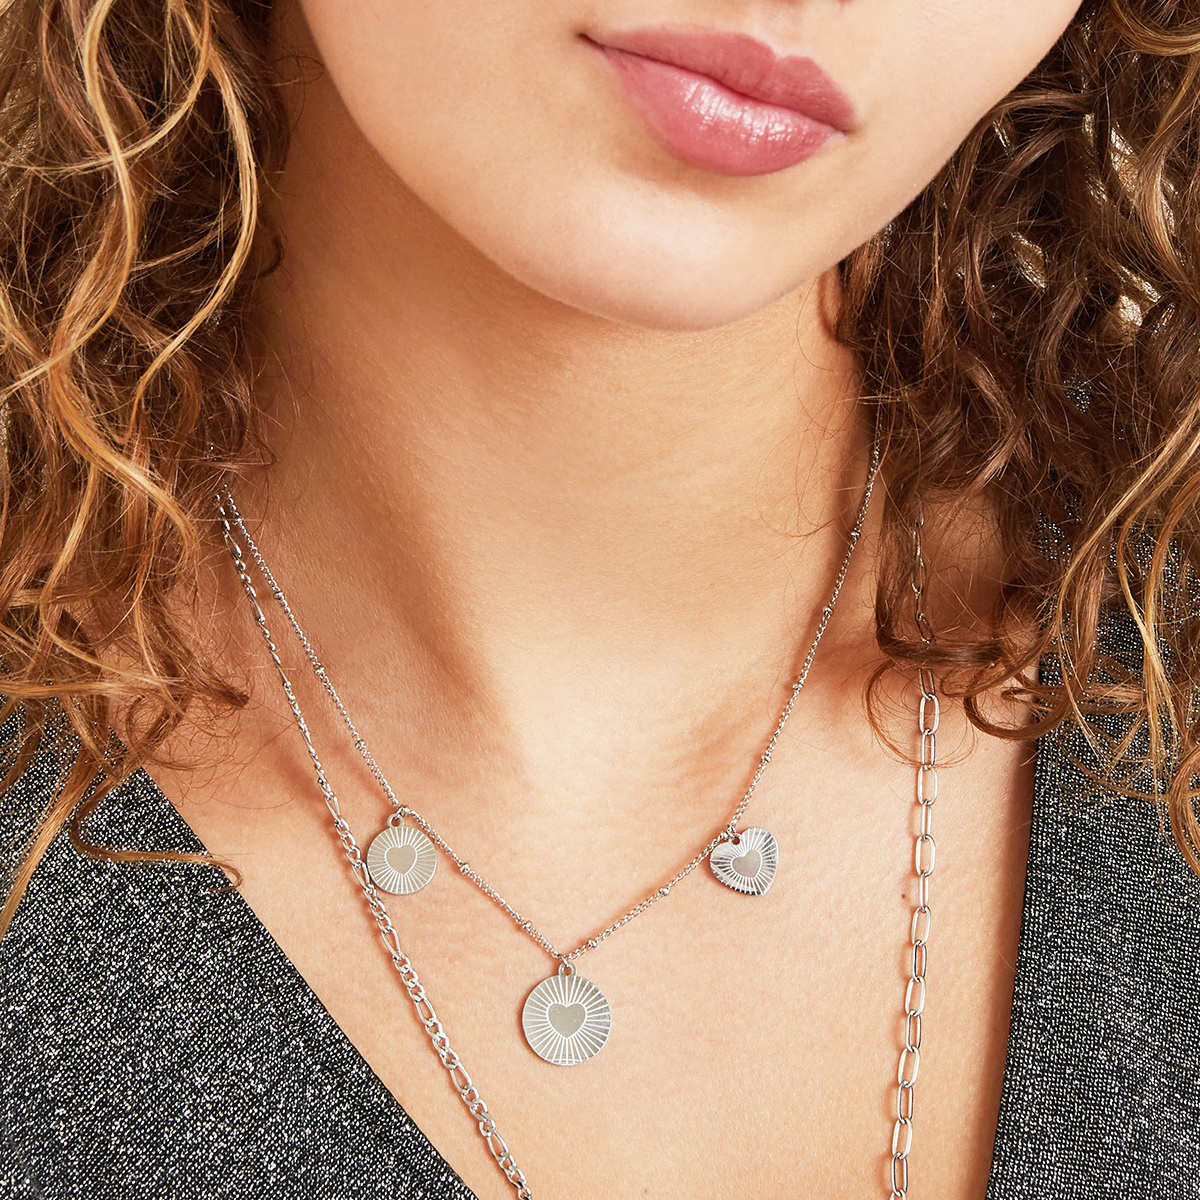 Stainless Steel Heart Necklace - Locked in Love